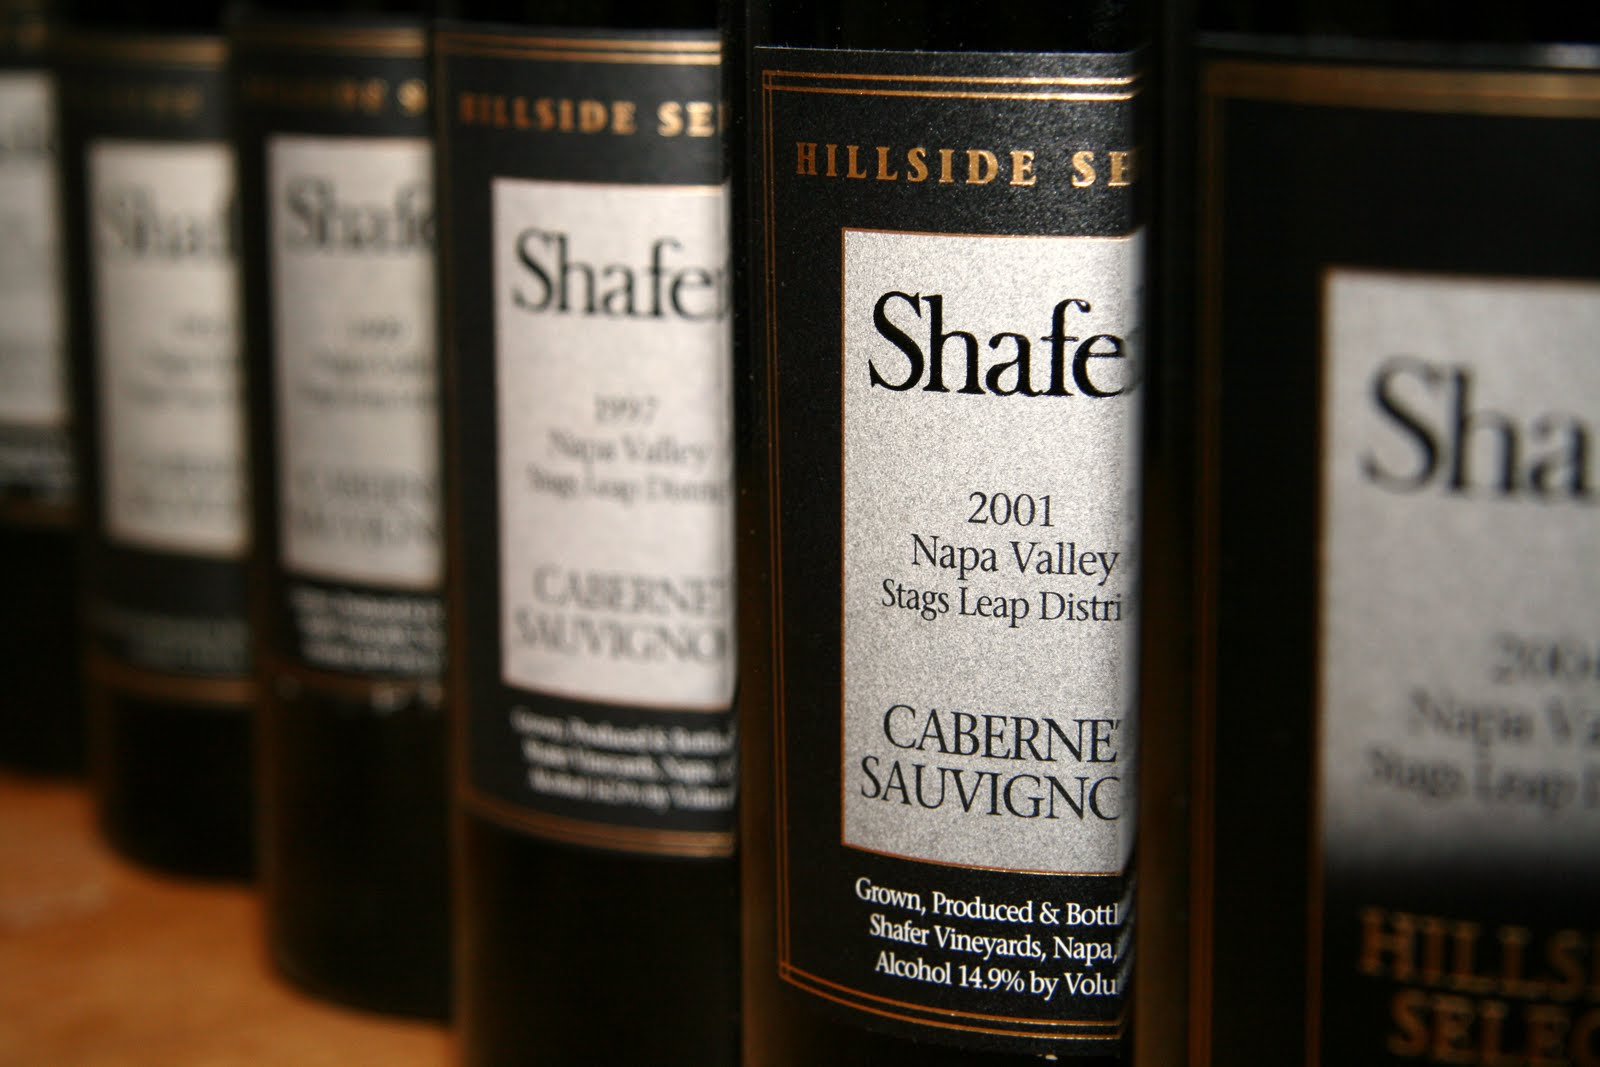 SHAFER ESTATE VINEYARDS HILLSIDE SELECT CABERNET